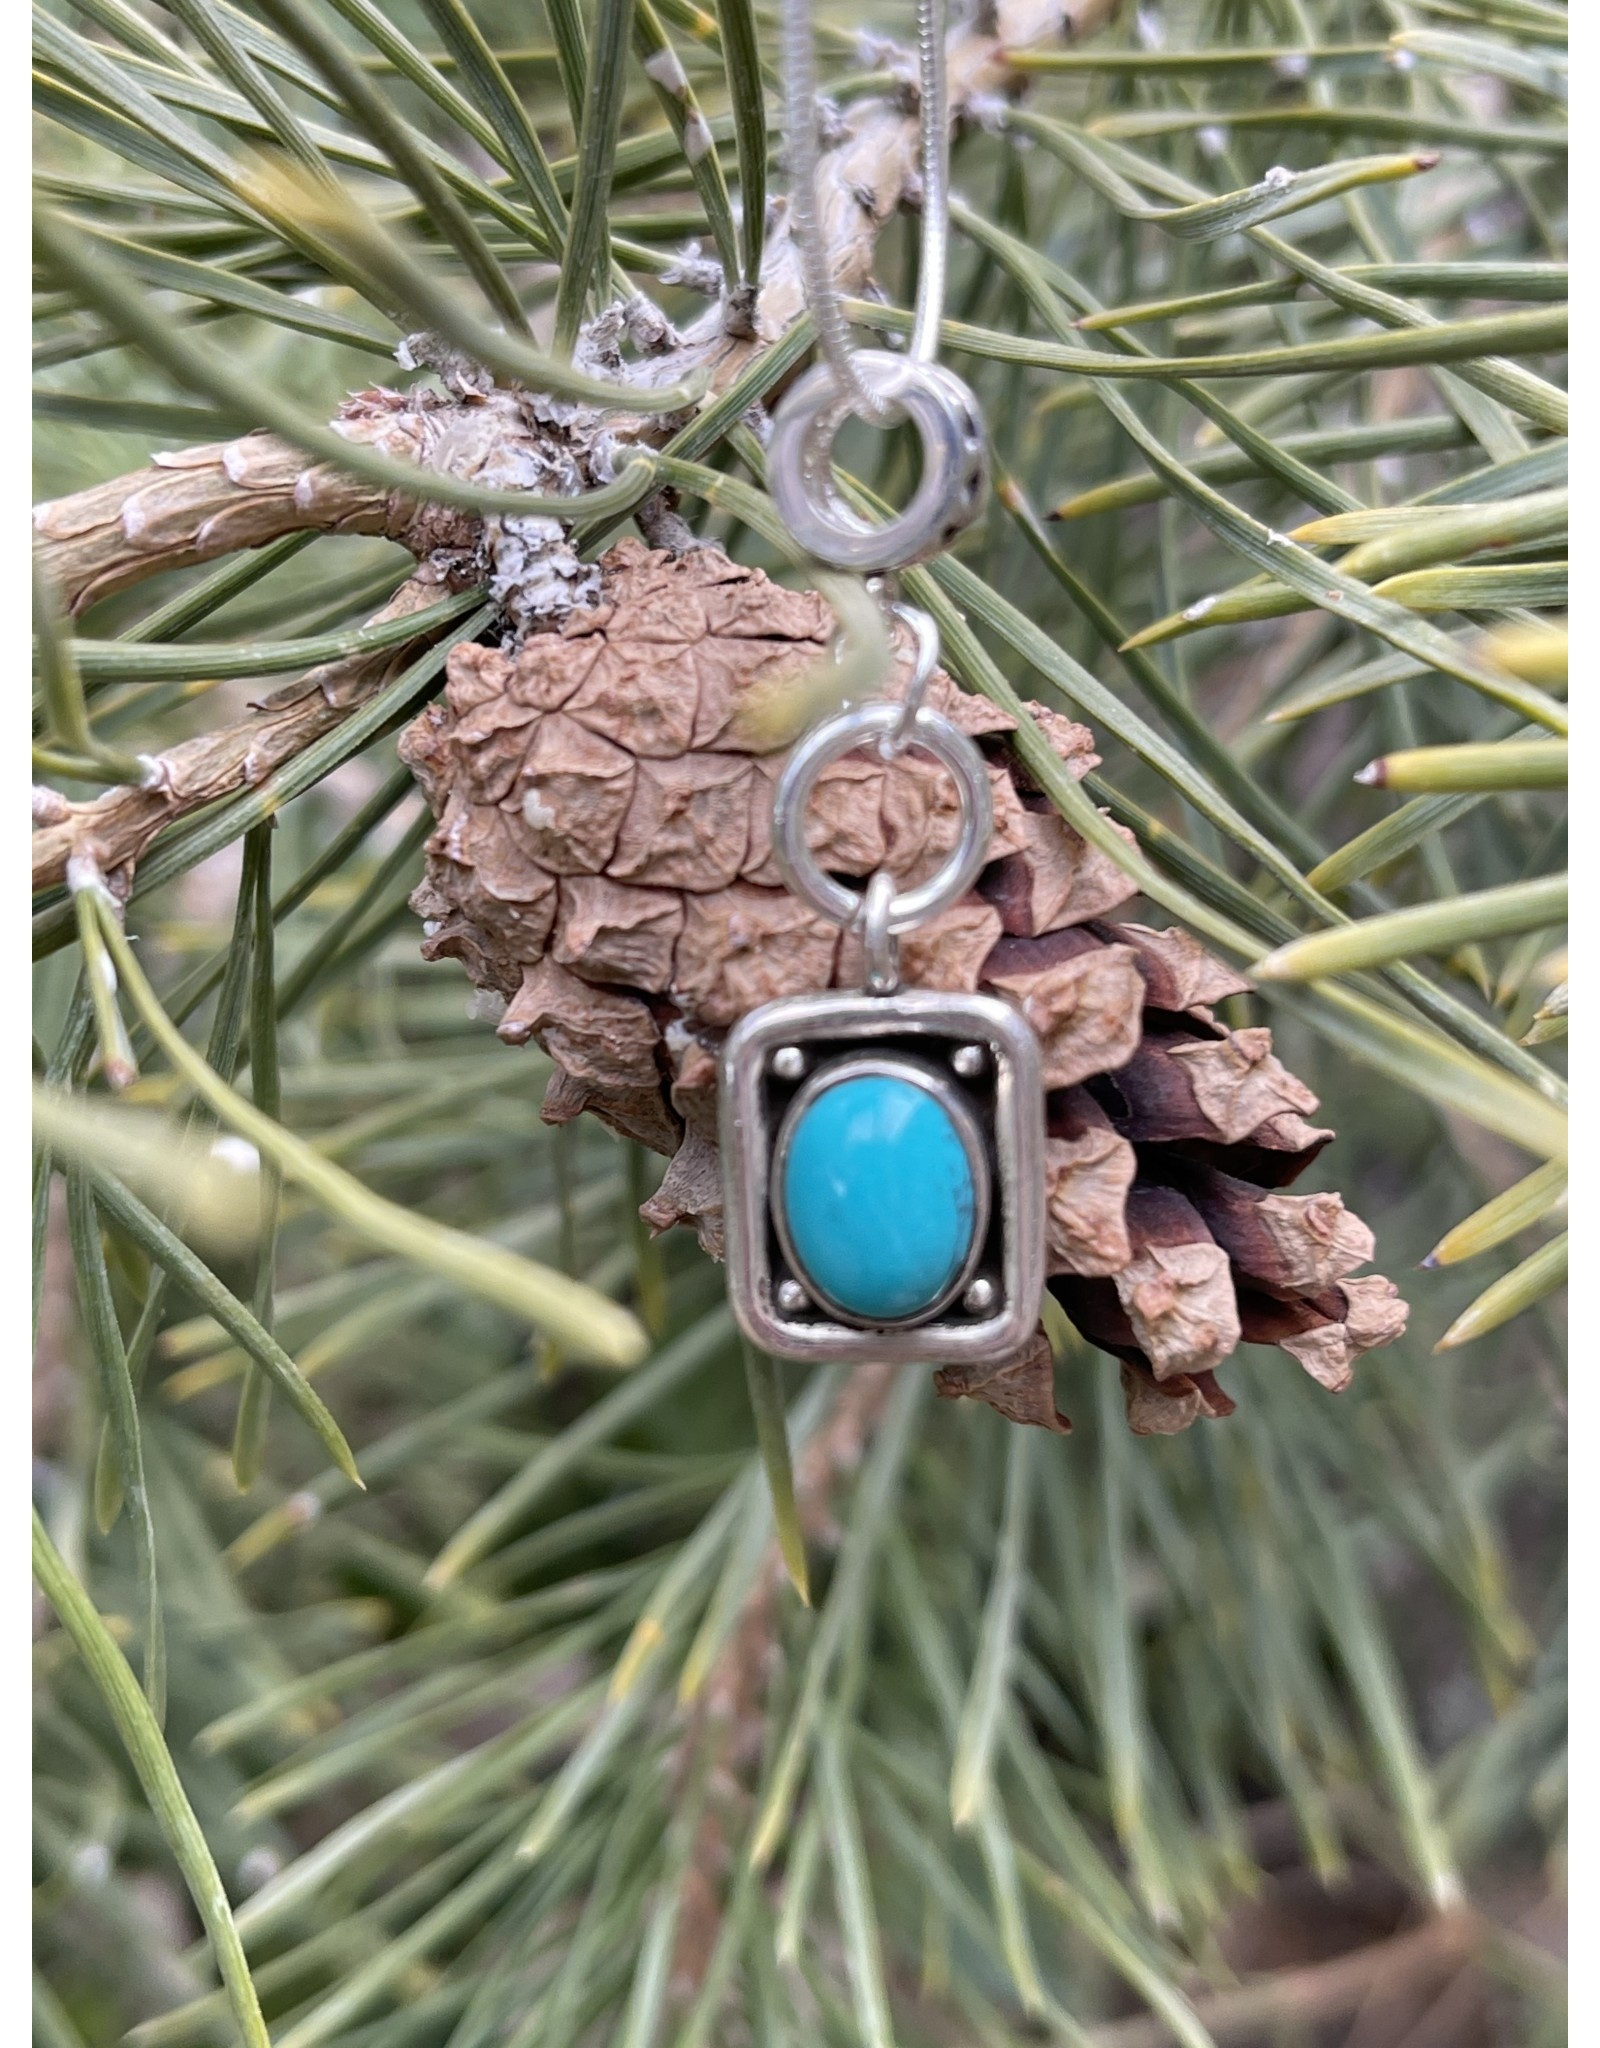 Annette Colby - Jeweler Blue Bird Turquoise Charm Necklace - Annette Colby